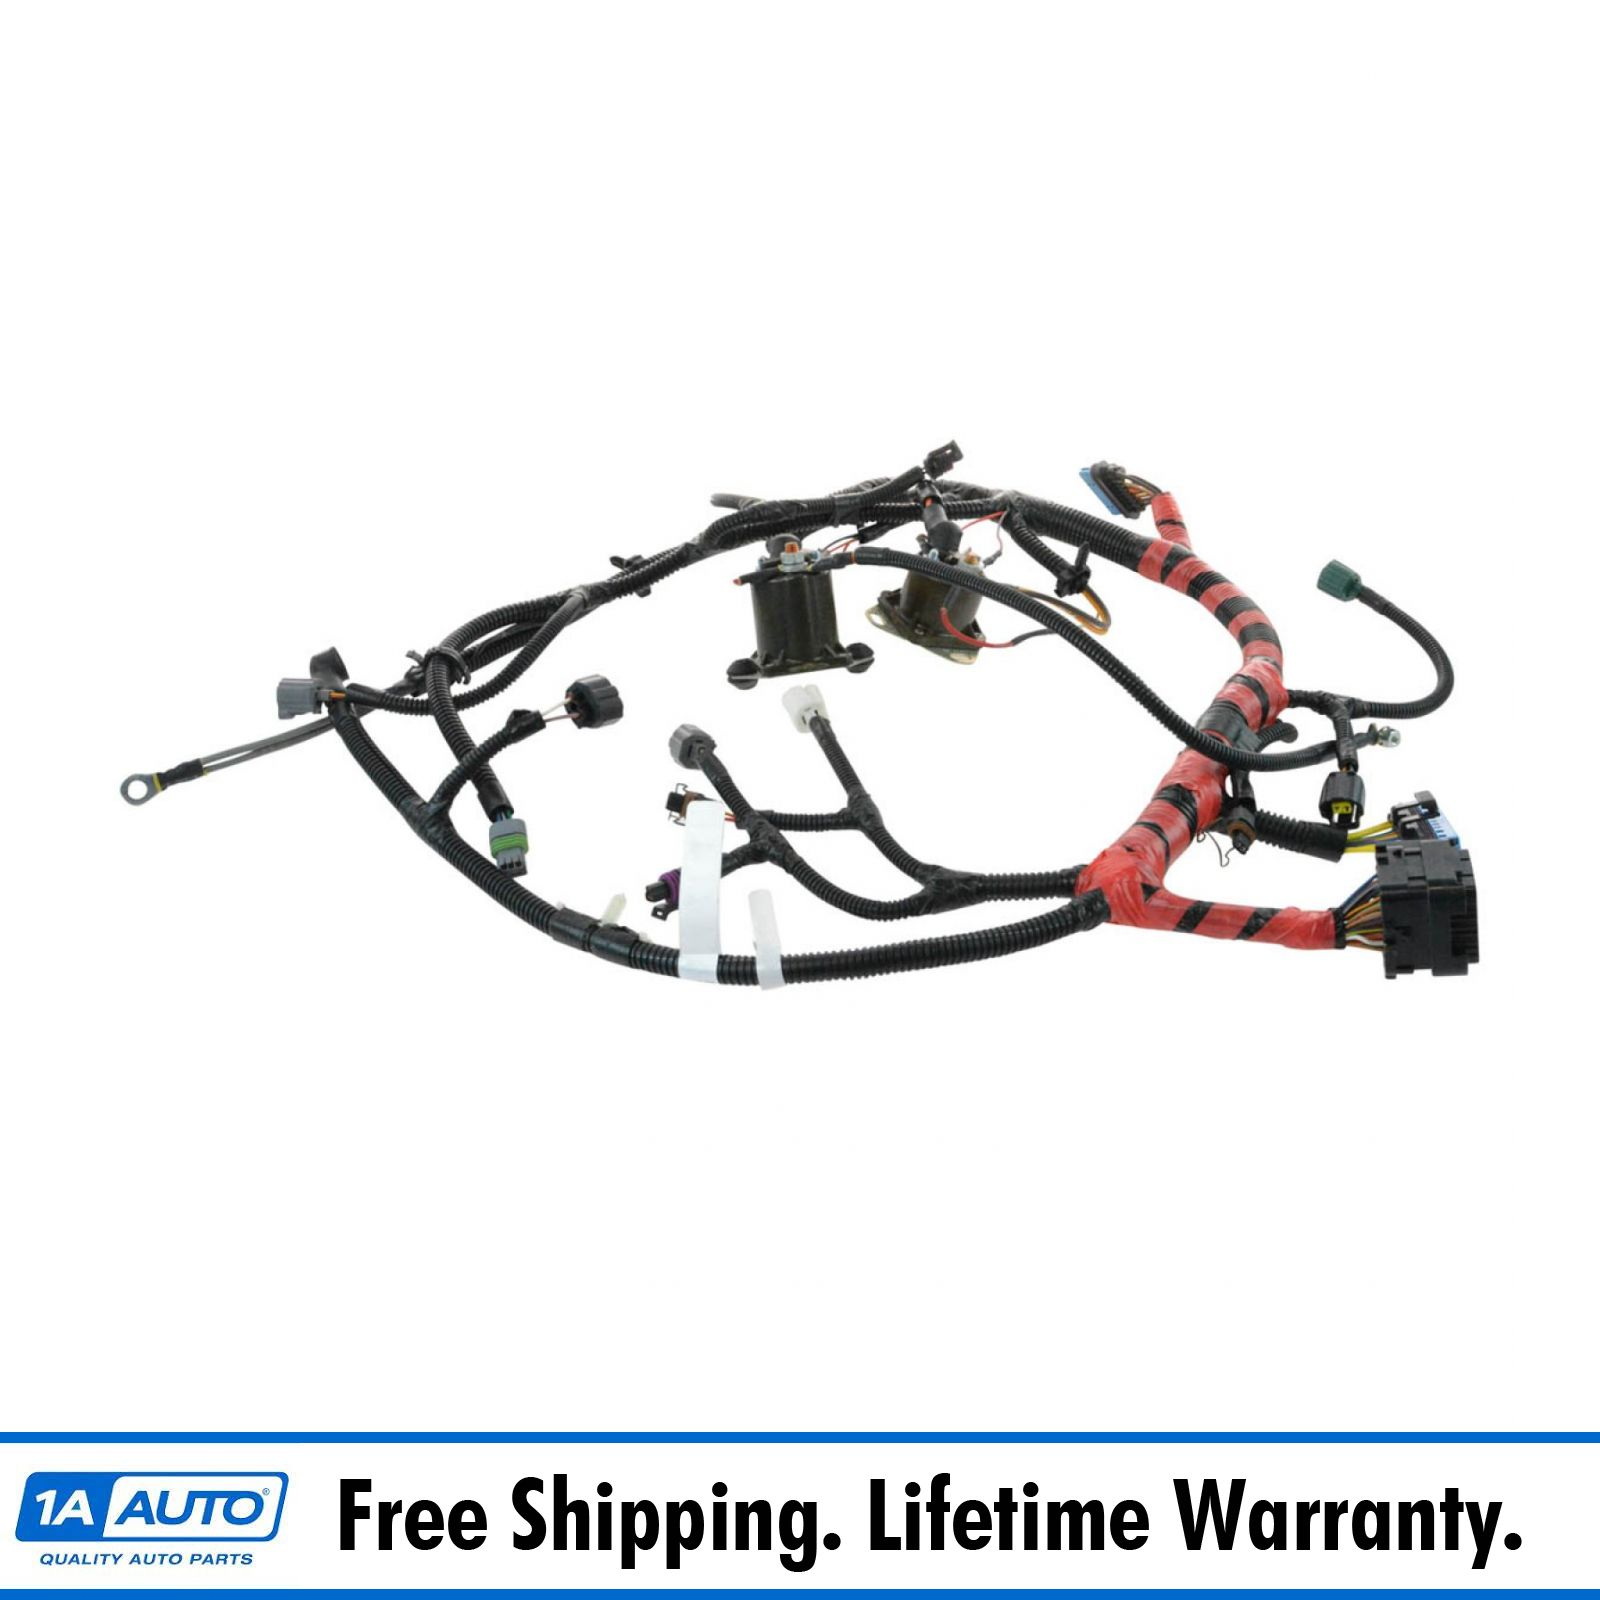 Oem F81z12b637fa Main Engine Wiring Harness For Super Duty Pickup Ford Excursion Truck Suv New